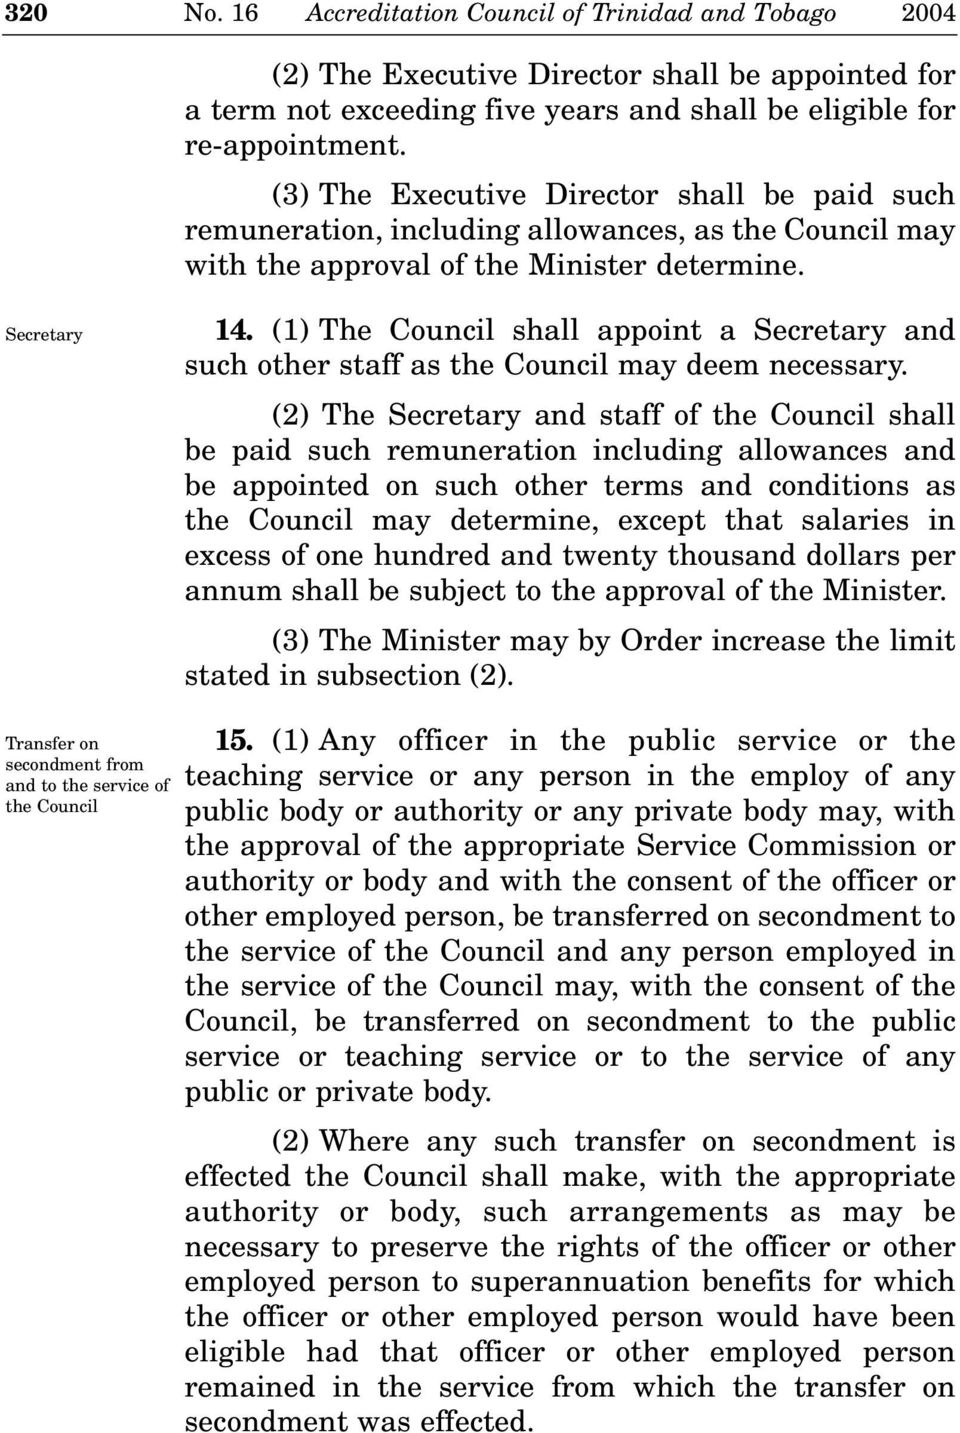 (1) The Council shall appoint a Secretary and such other staff as the Council may deem necessary.